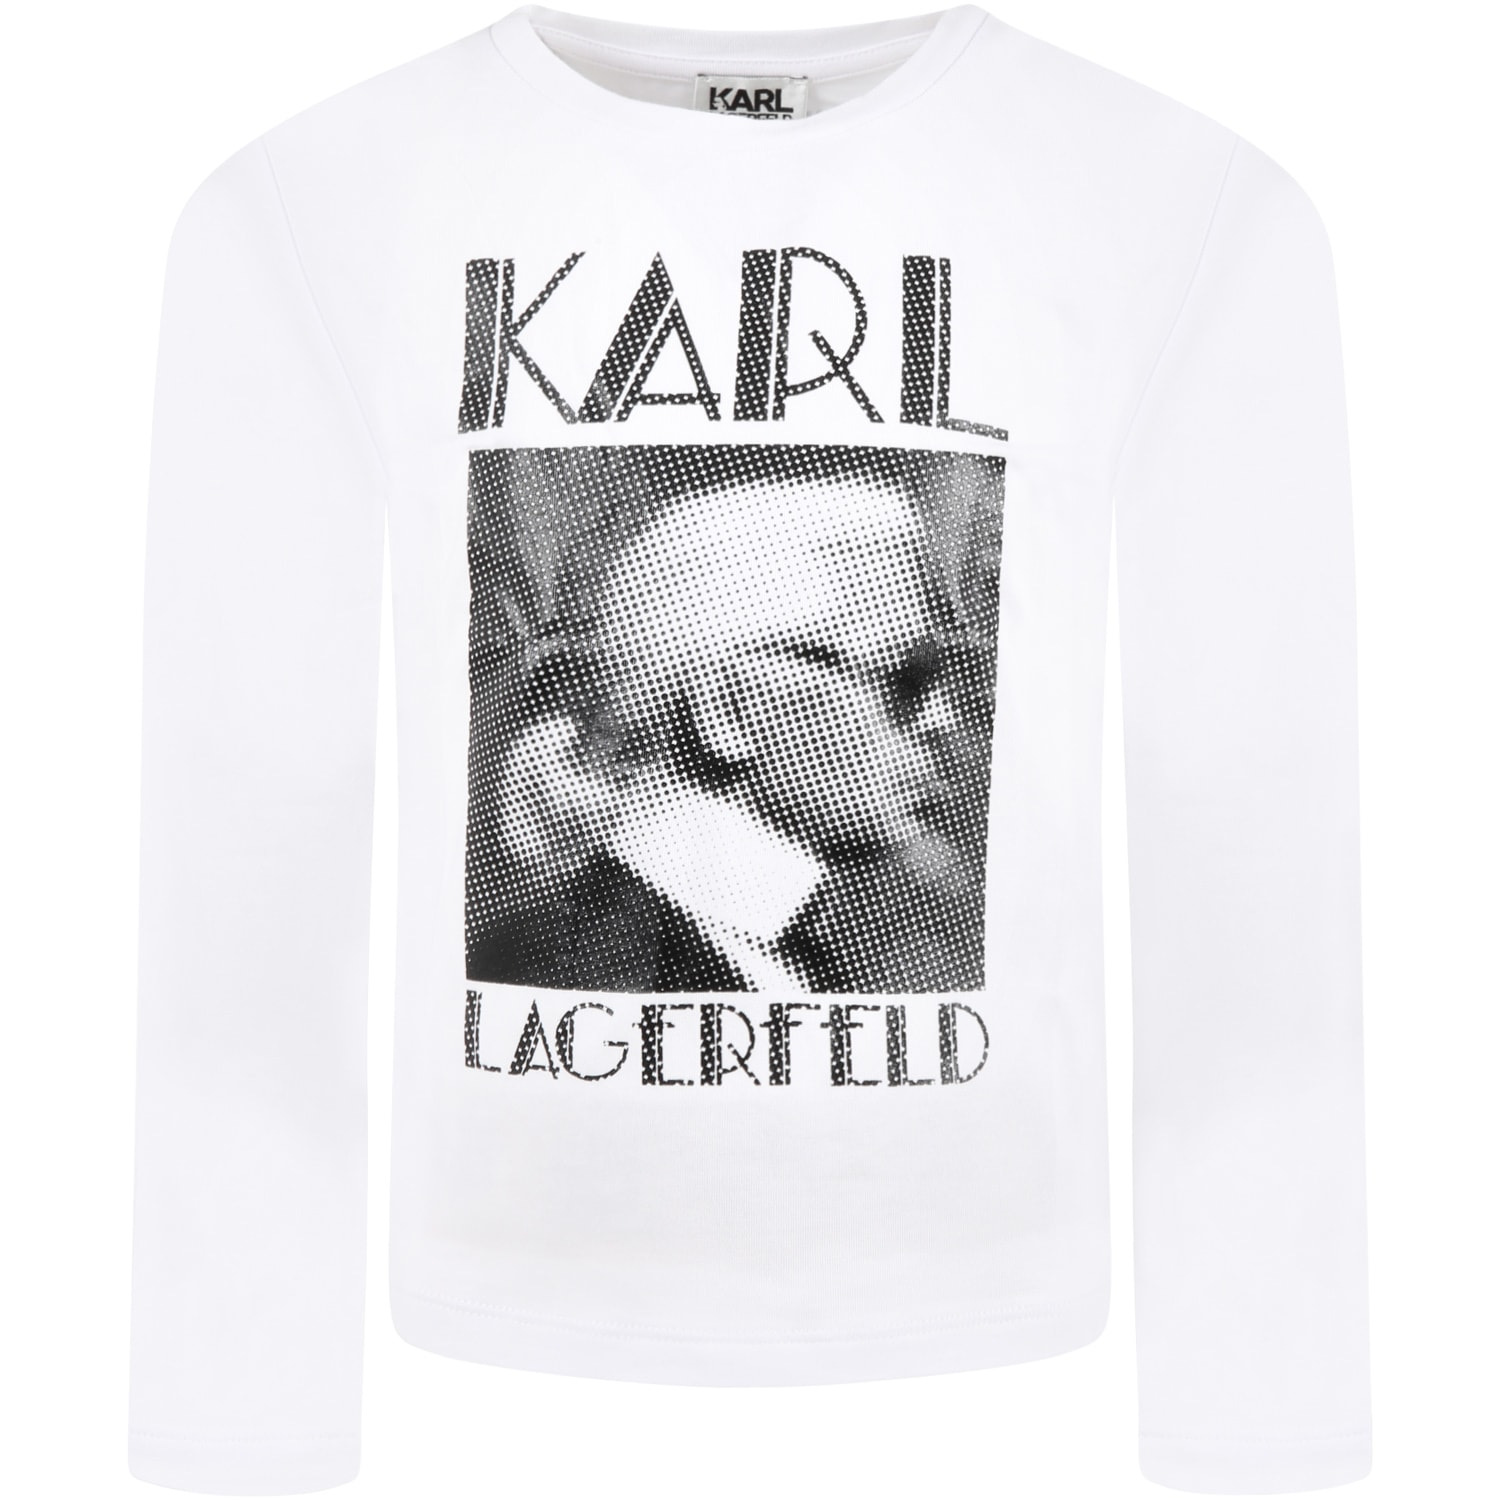 White T-shirt For Kids With Karl Lagerfeld